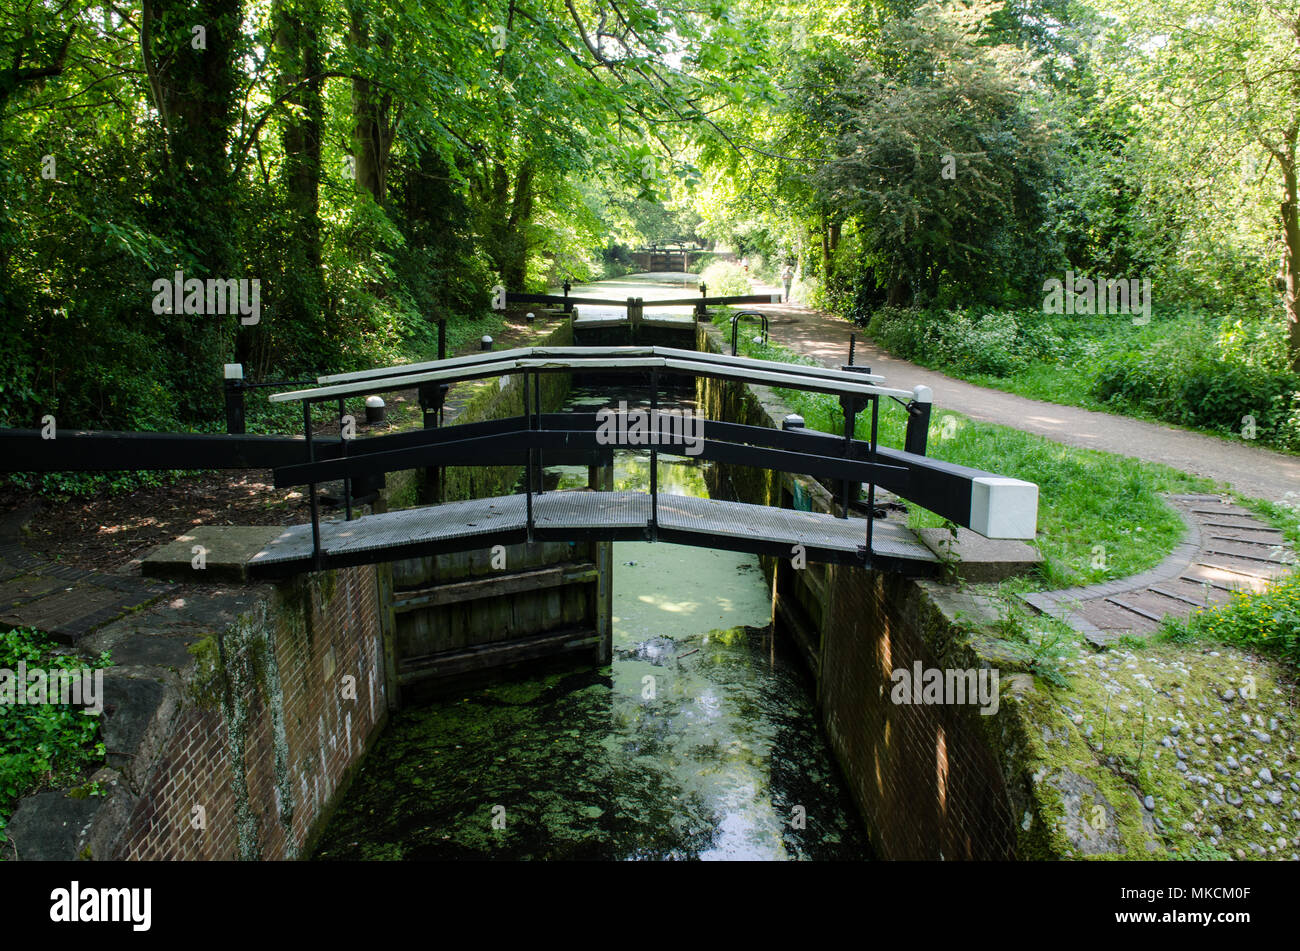 The Basingstoke Canal climbs through a set of locks in woodland between Woking and Deepcut in Surrey. - Stock Image